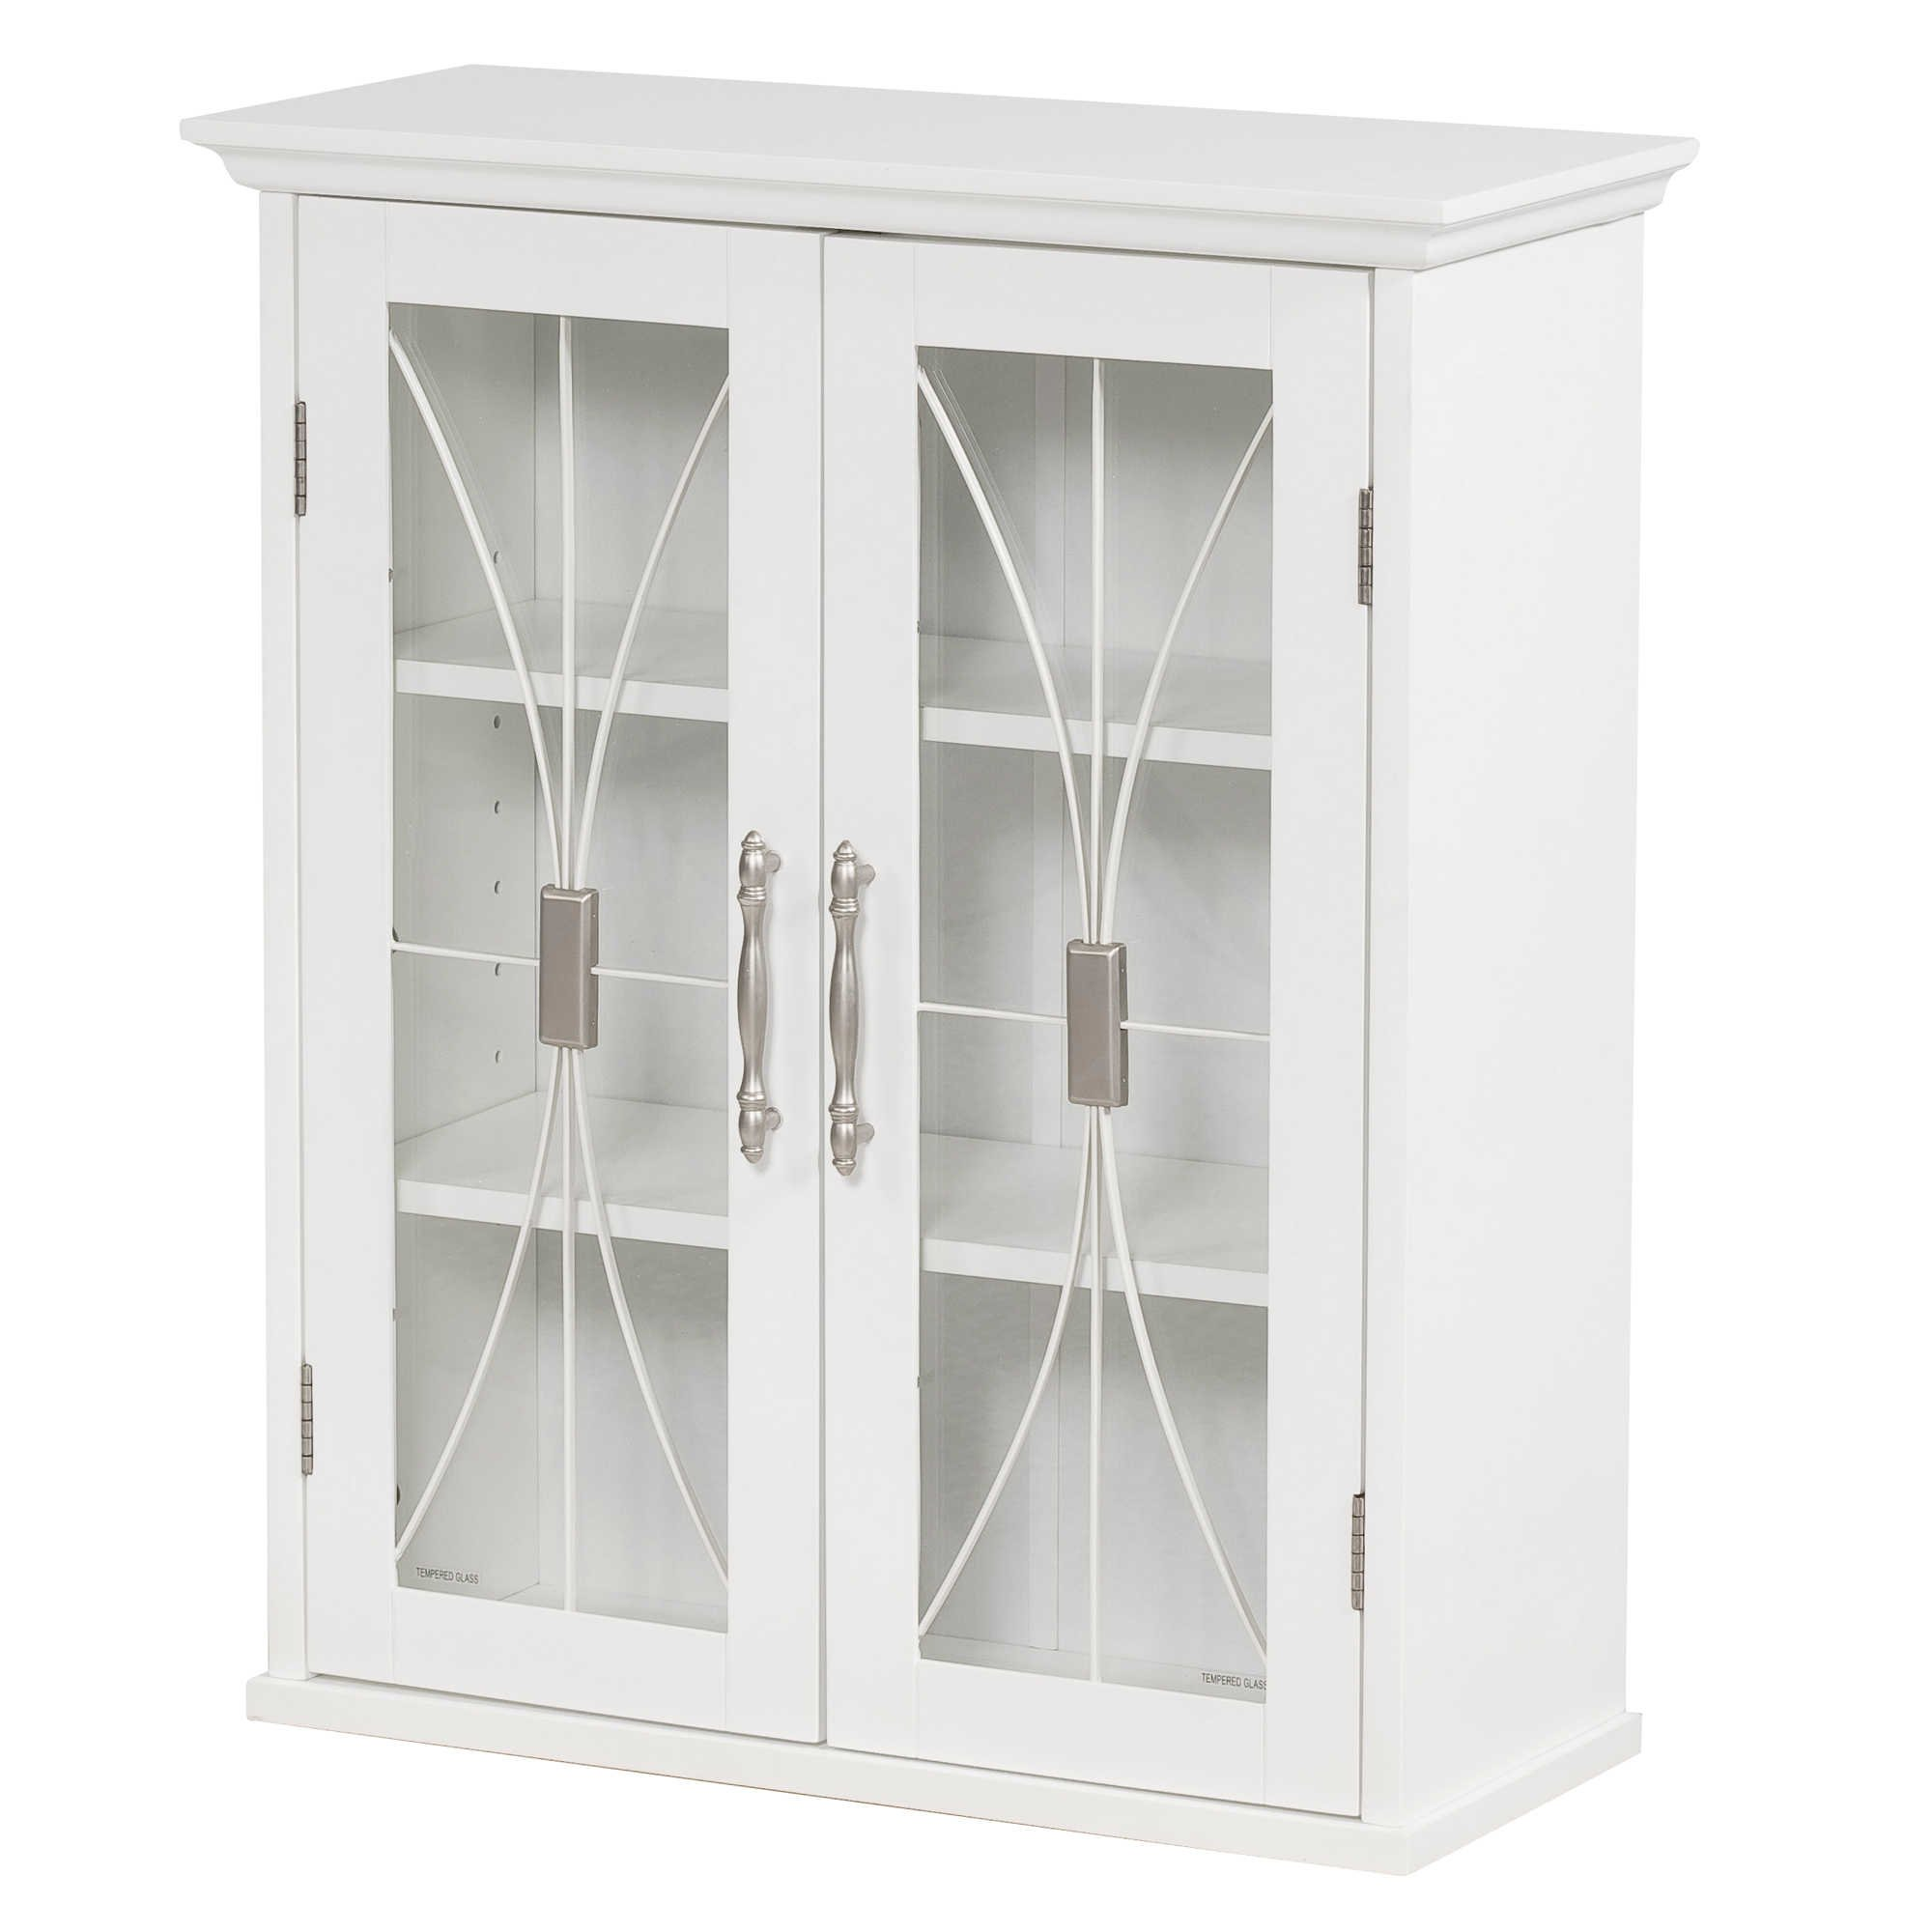 Elegant Home Fashions Collection Traditional Style 2-Door Shelved Wall Cabinet with Glass-Paneled Doors in White